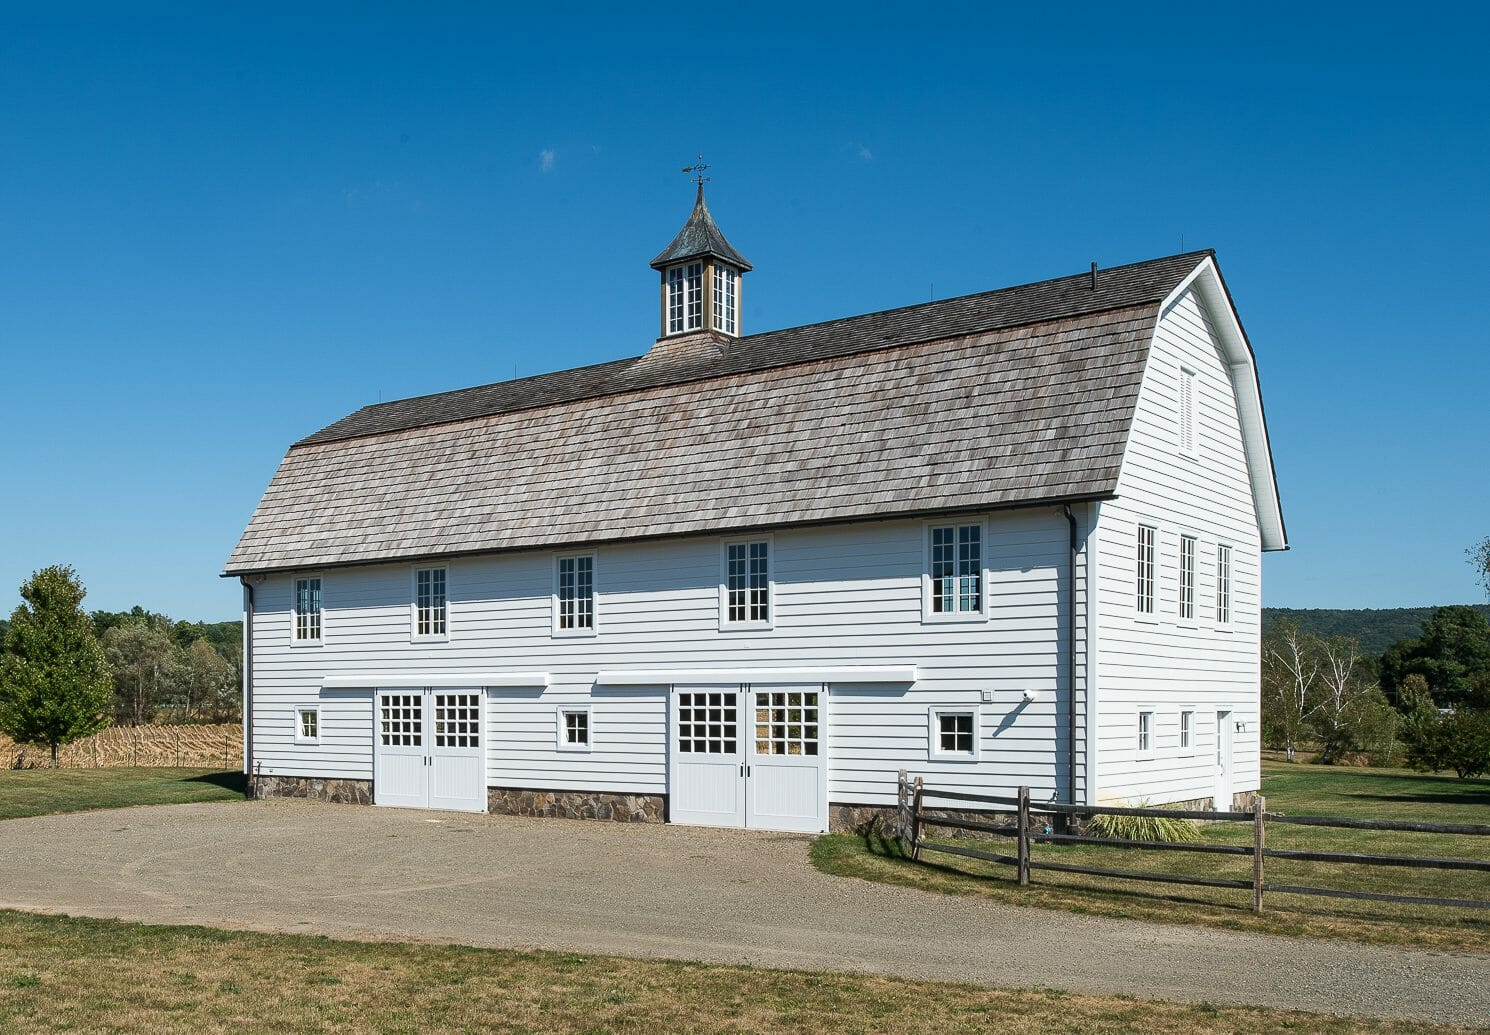 Exterior of Eberhart Gable Barn in Upstate NY